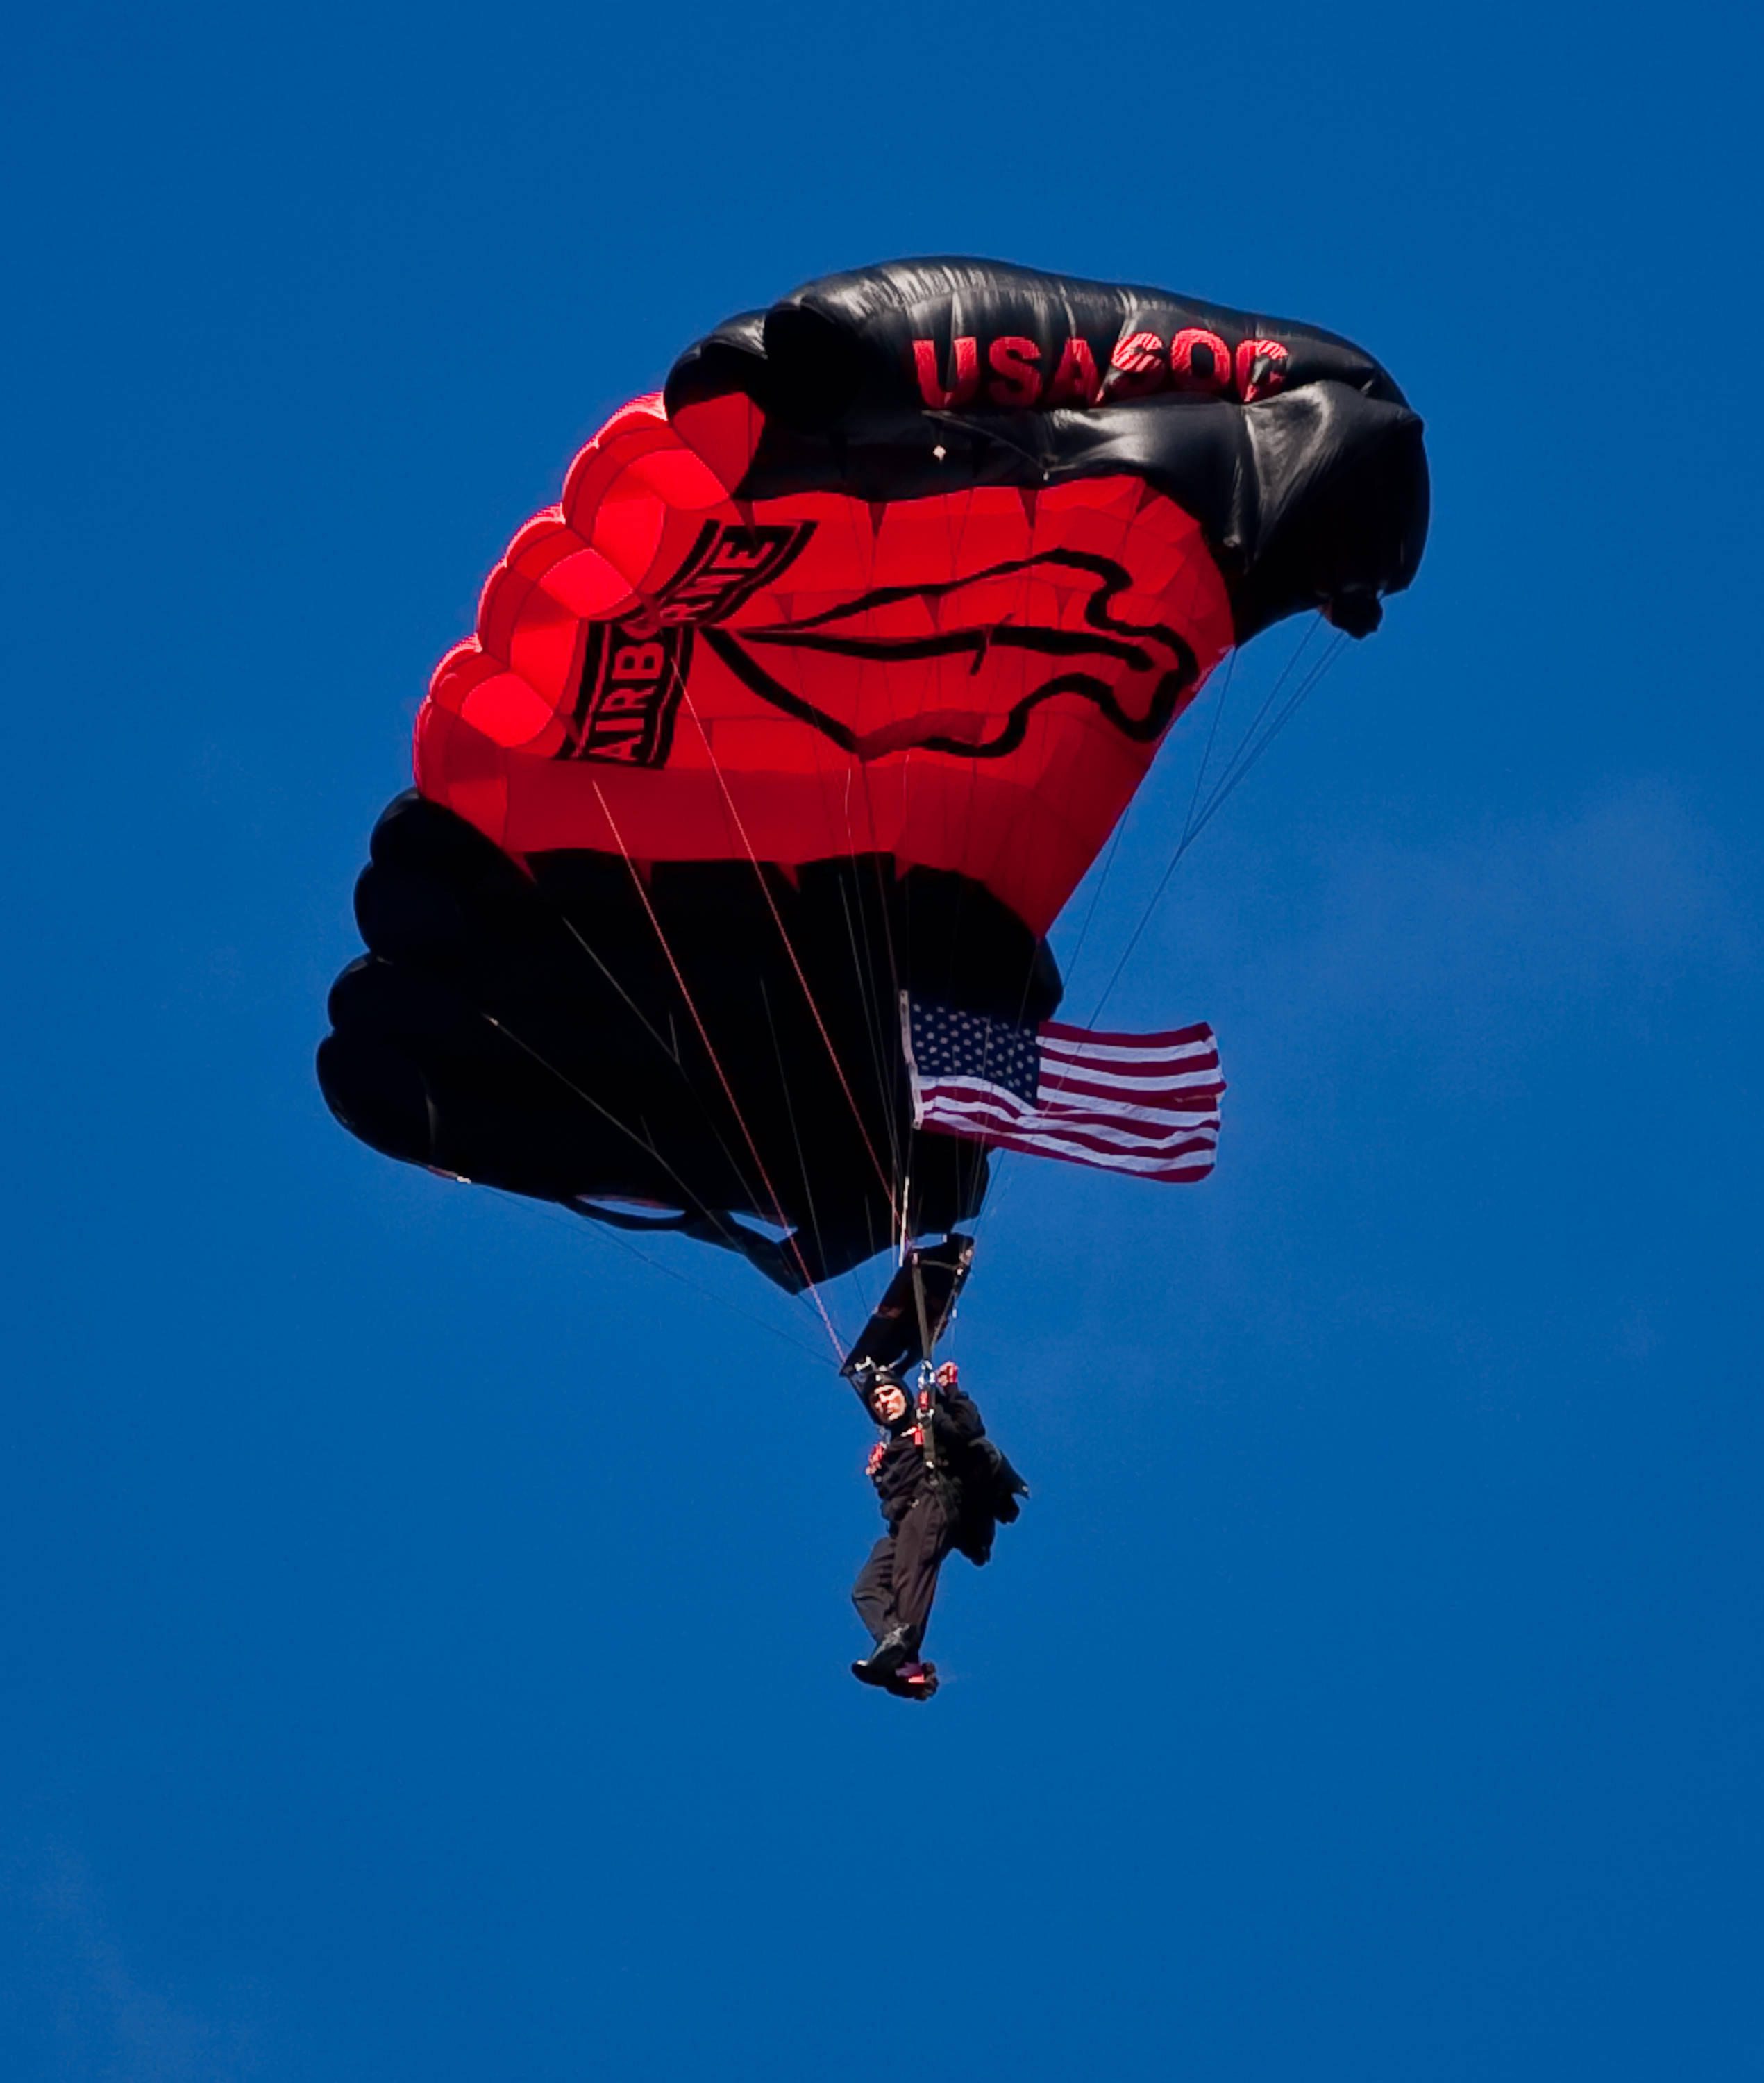 Army Black Dagger parachute team